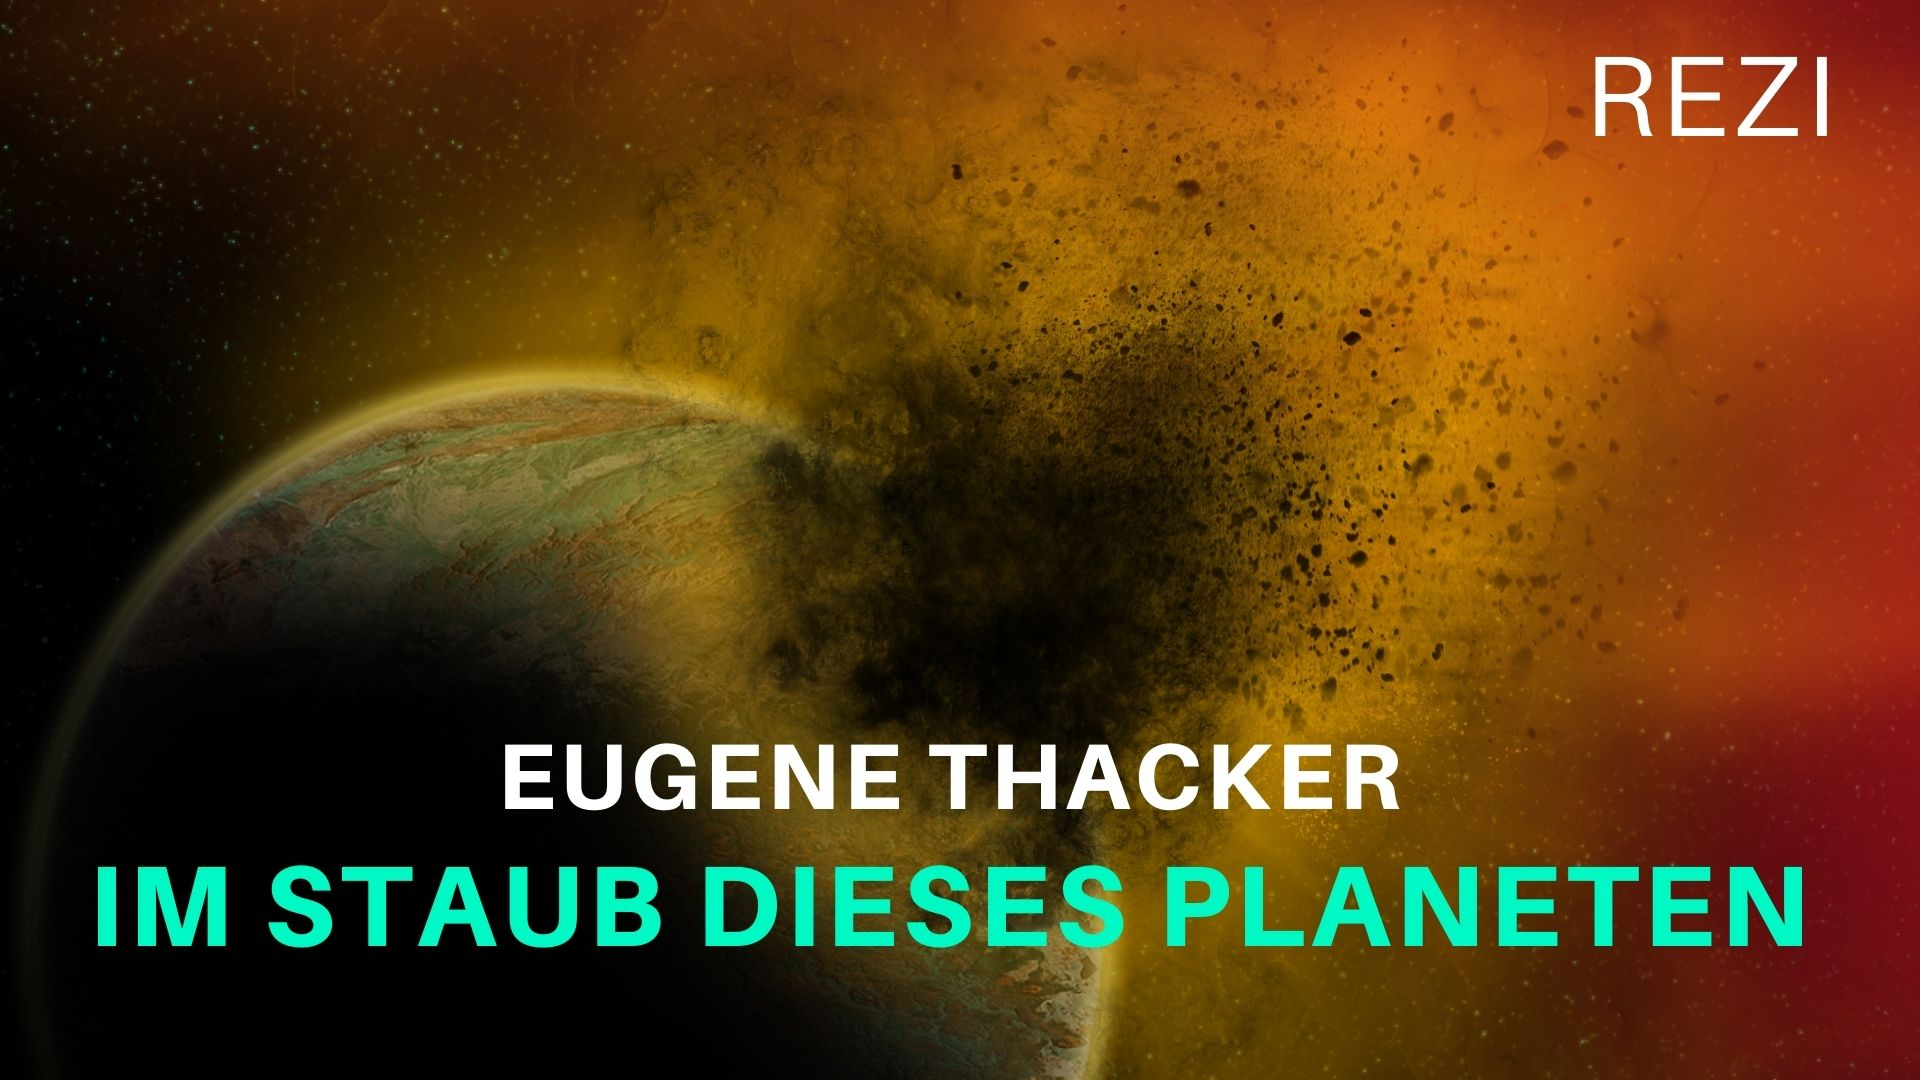 Eugene Thacker Im Staub dieses Planeten In the Dust of this Planet deutsch Rezension Storymonster Horror Philosophie